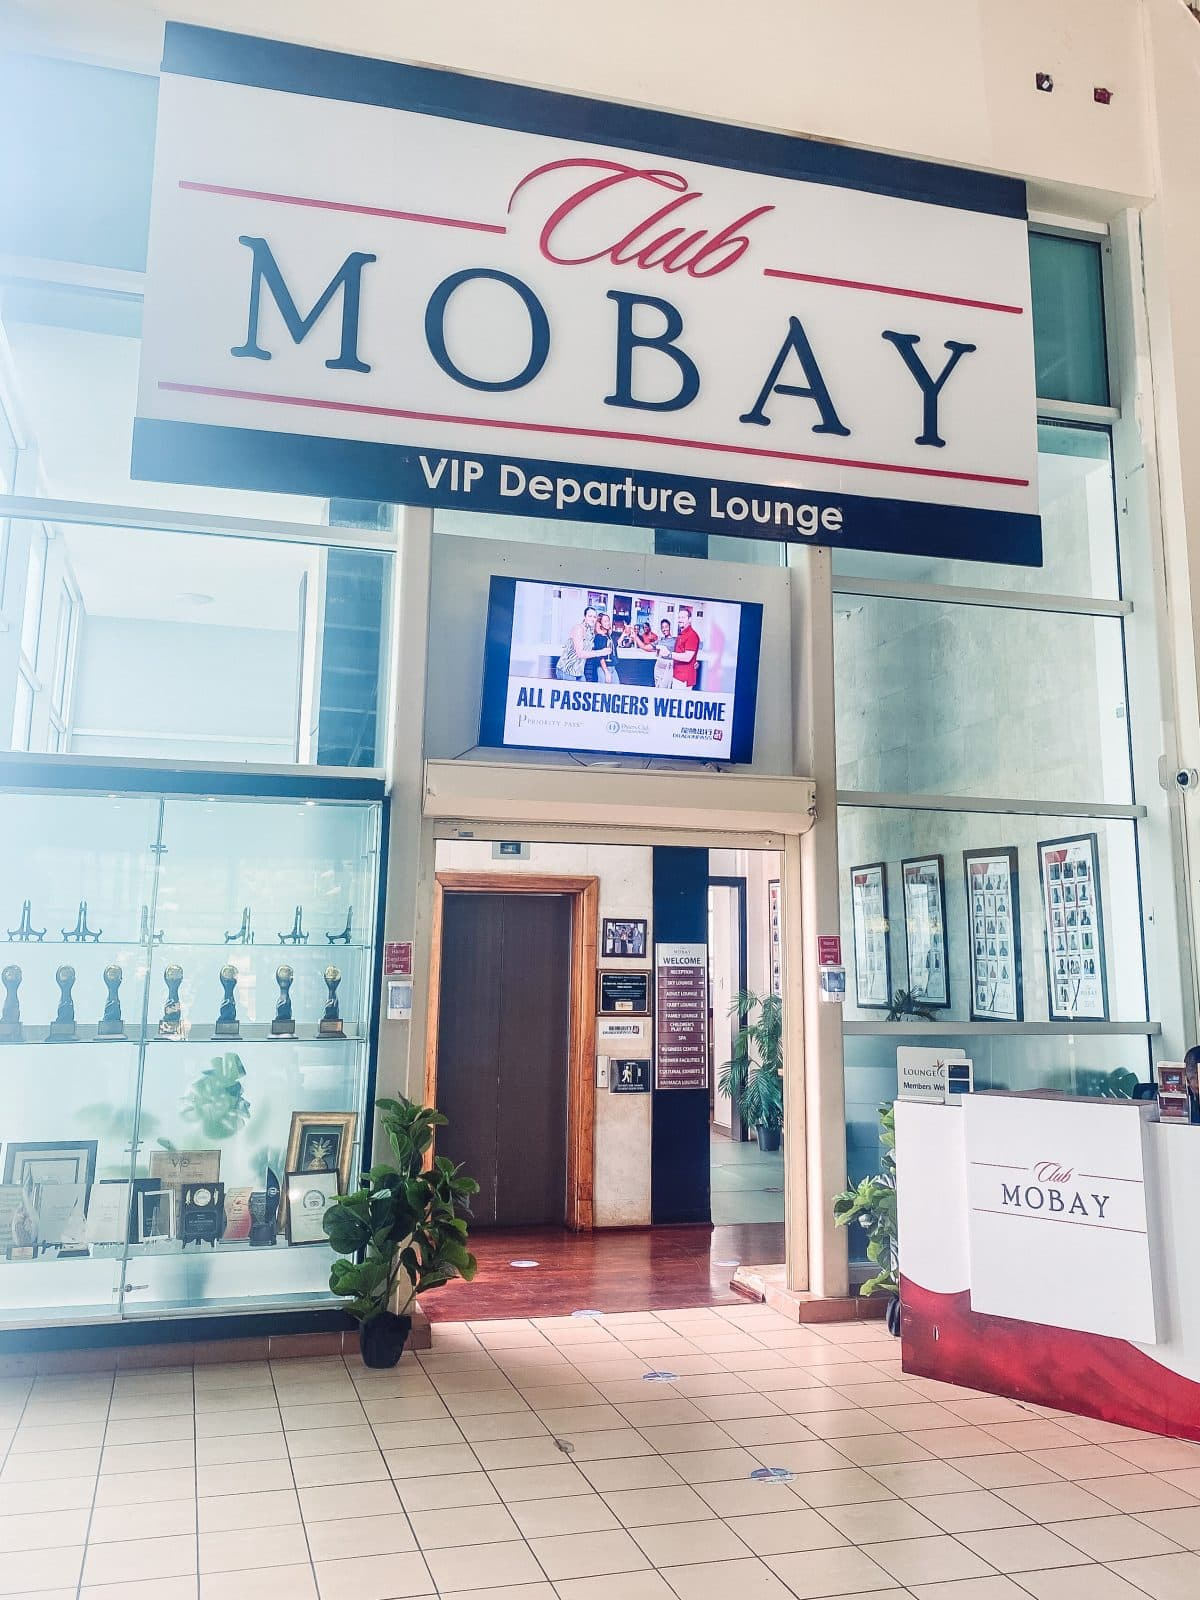 Is Club MoBay worth it? Club MoBay Montego Bay Airport VIP Departure Lounge